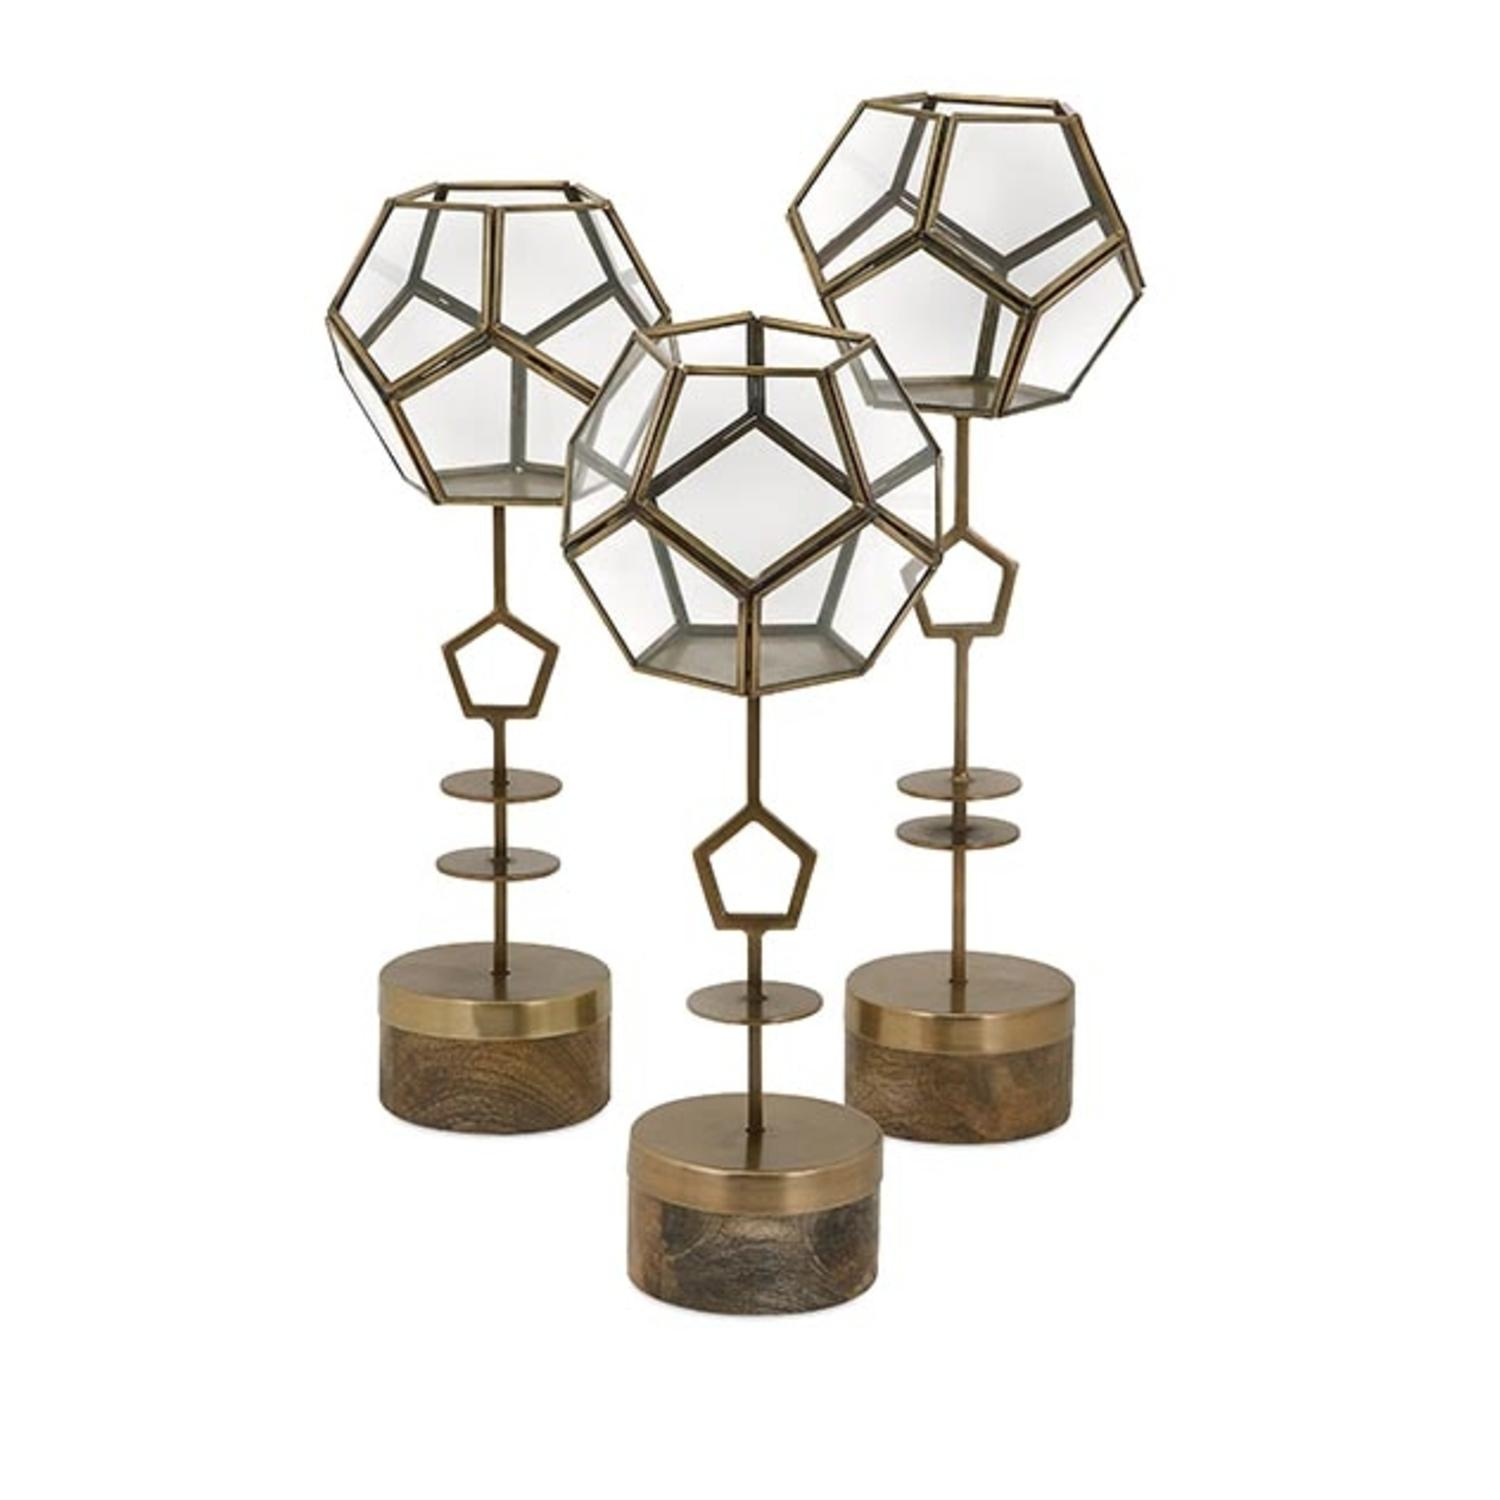 Set of 3 Contemporary Glass Geodesic Bowl and Mango Wood Terrarium Plant Stands 18""